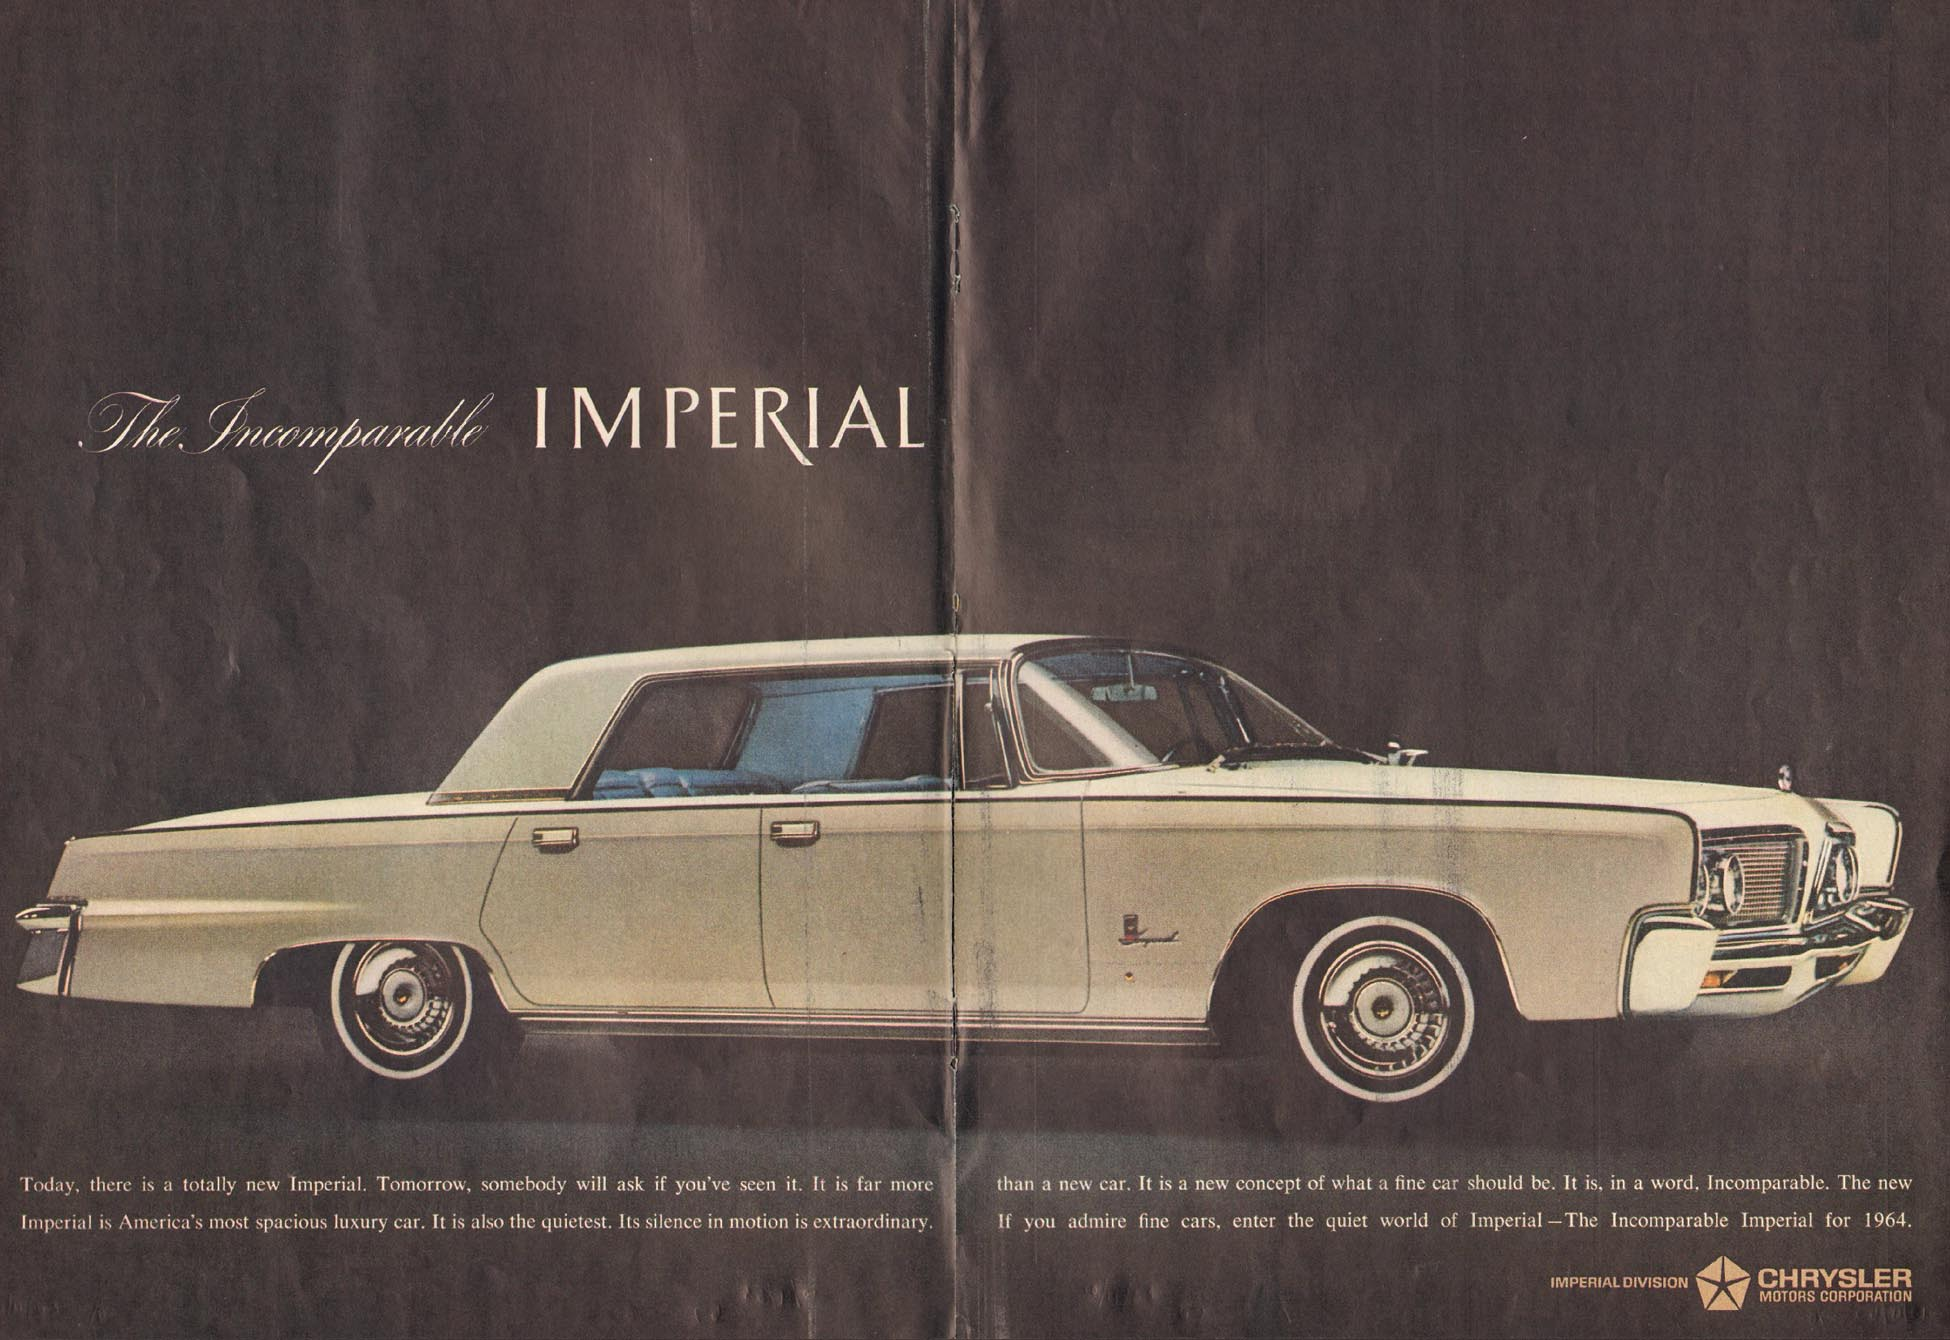 CHRYSLER AUTOMOBILES TIME 10/04/1963 p. 68